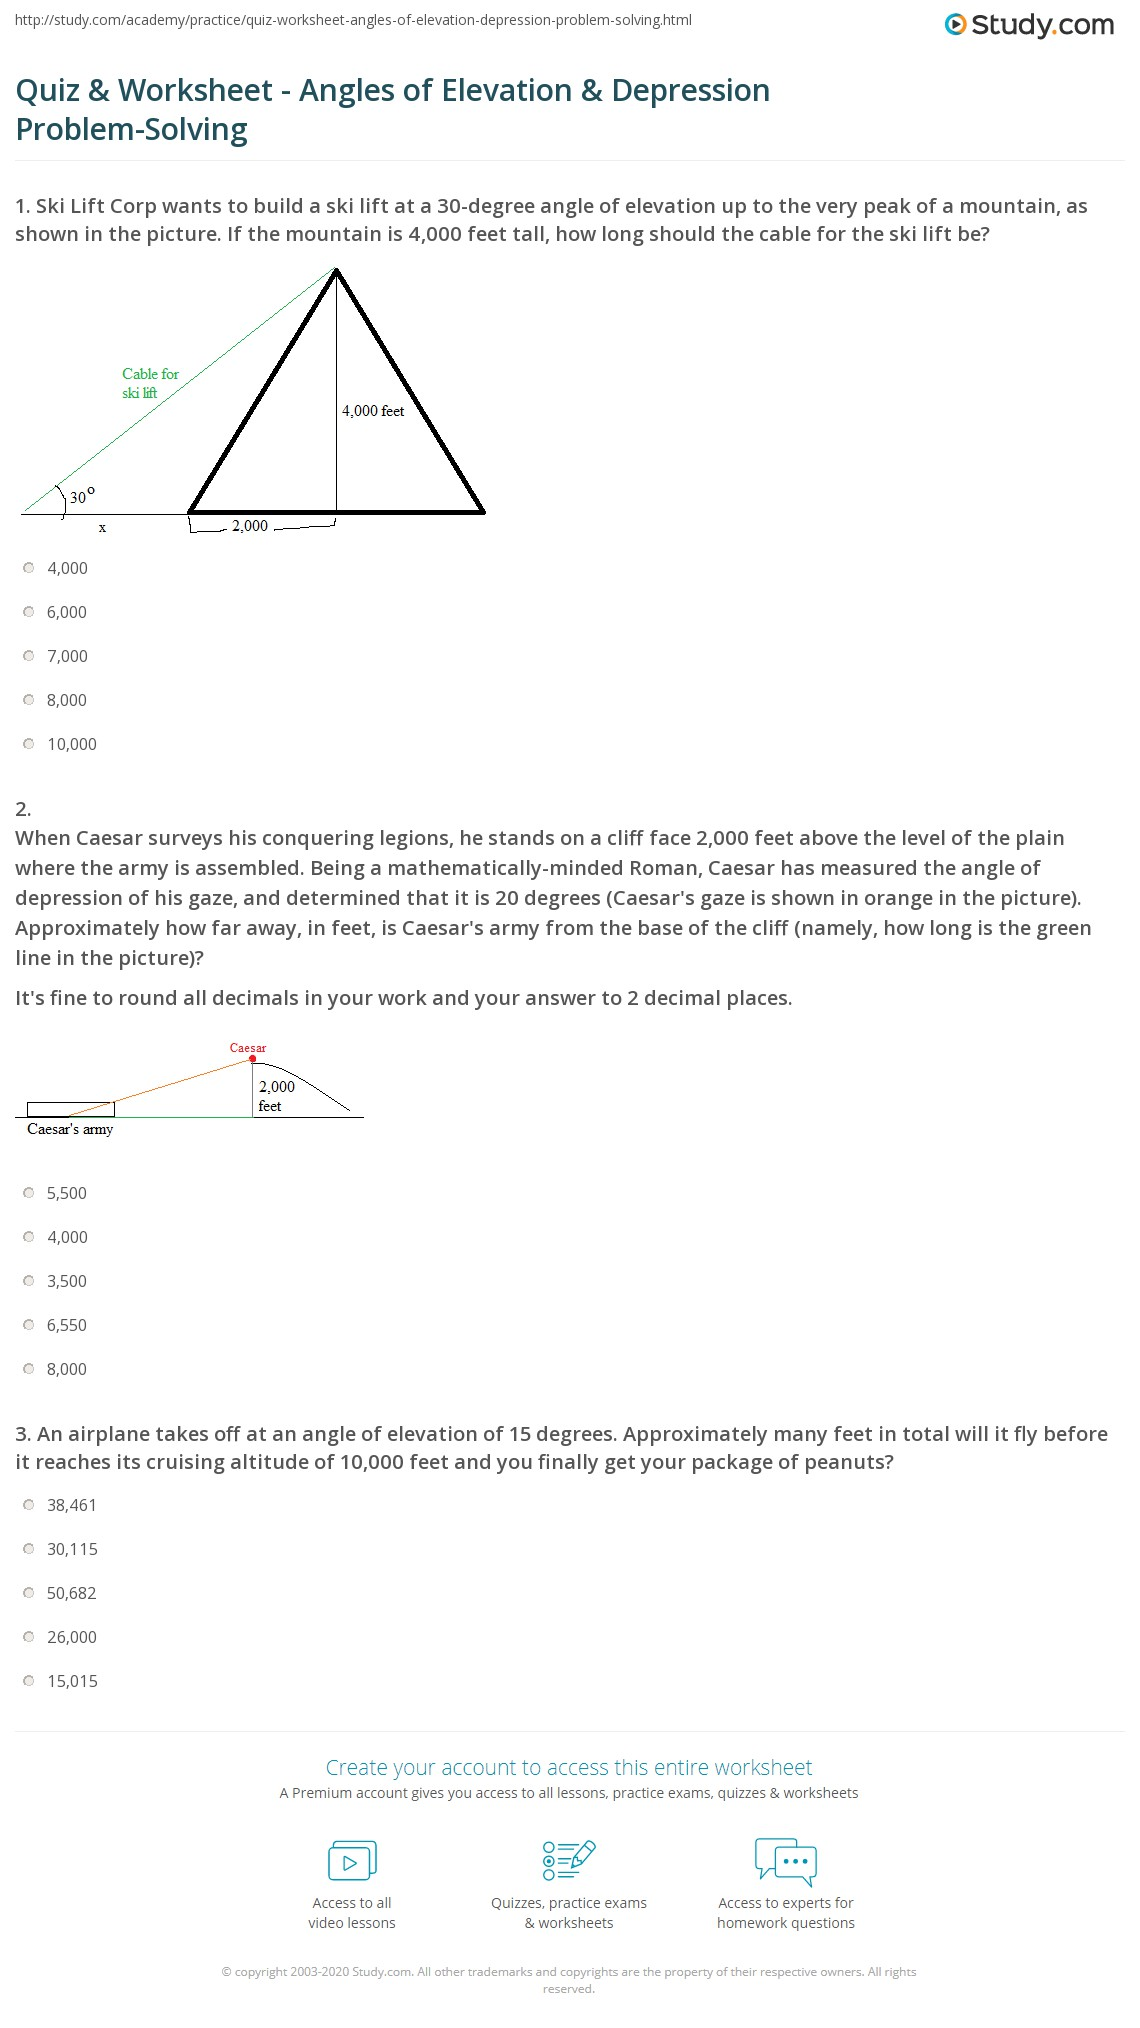 lesson 10-3 problem solving angles of elevation and depression